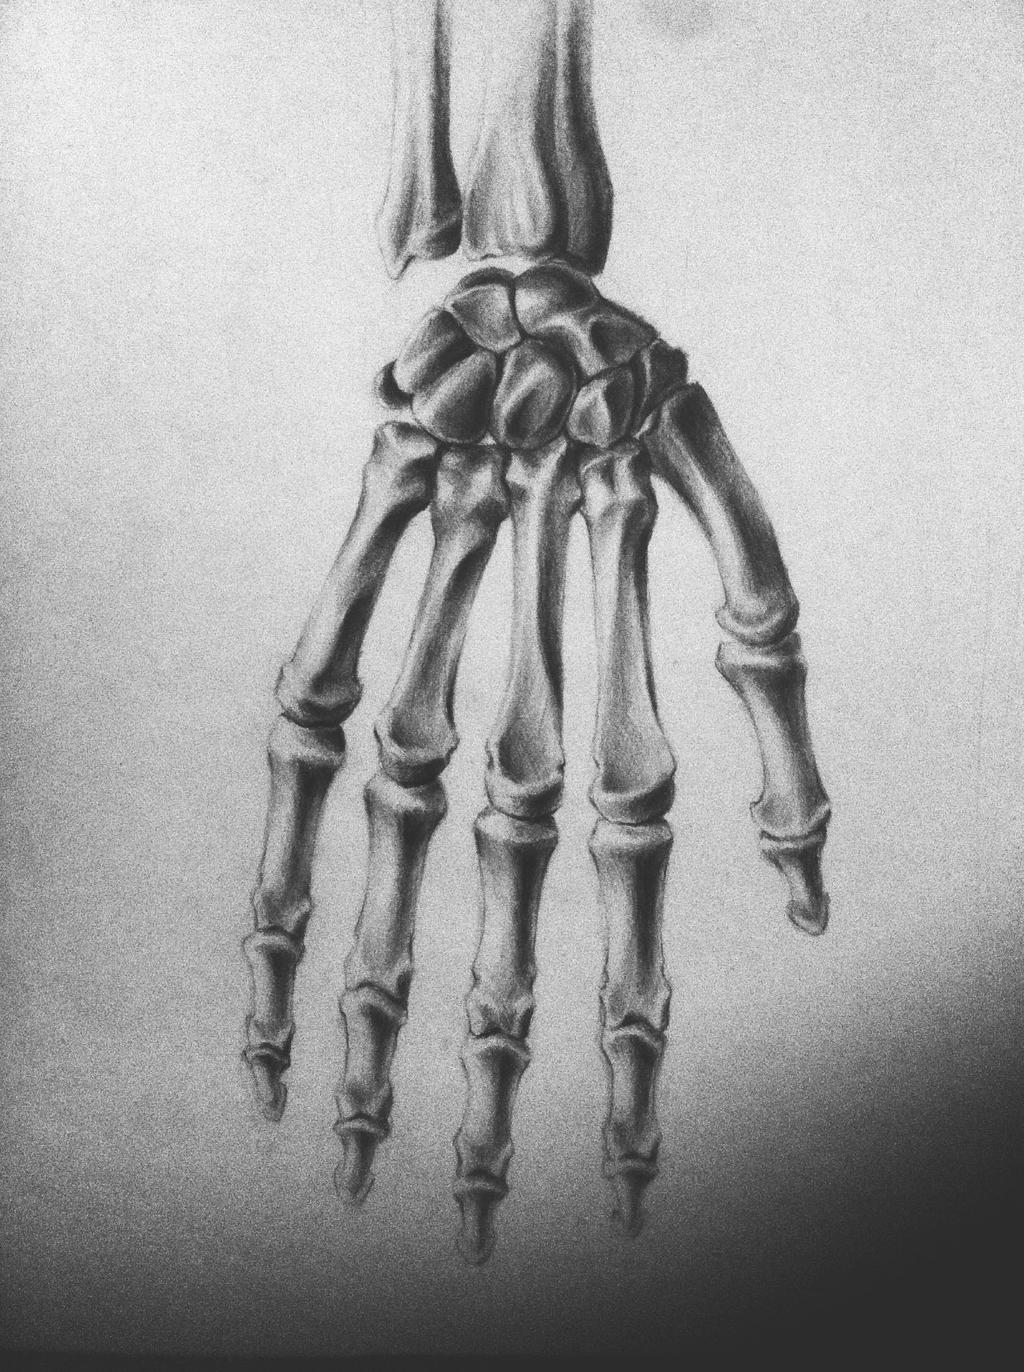 Hand Bones Anatomy By Peepholee On Deviantart